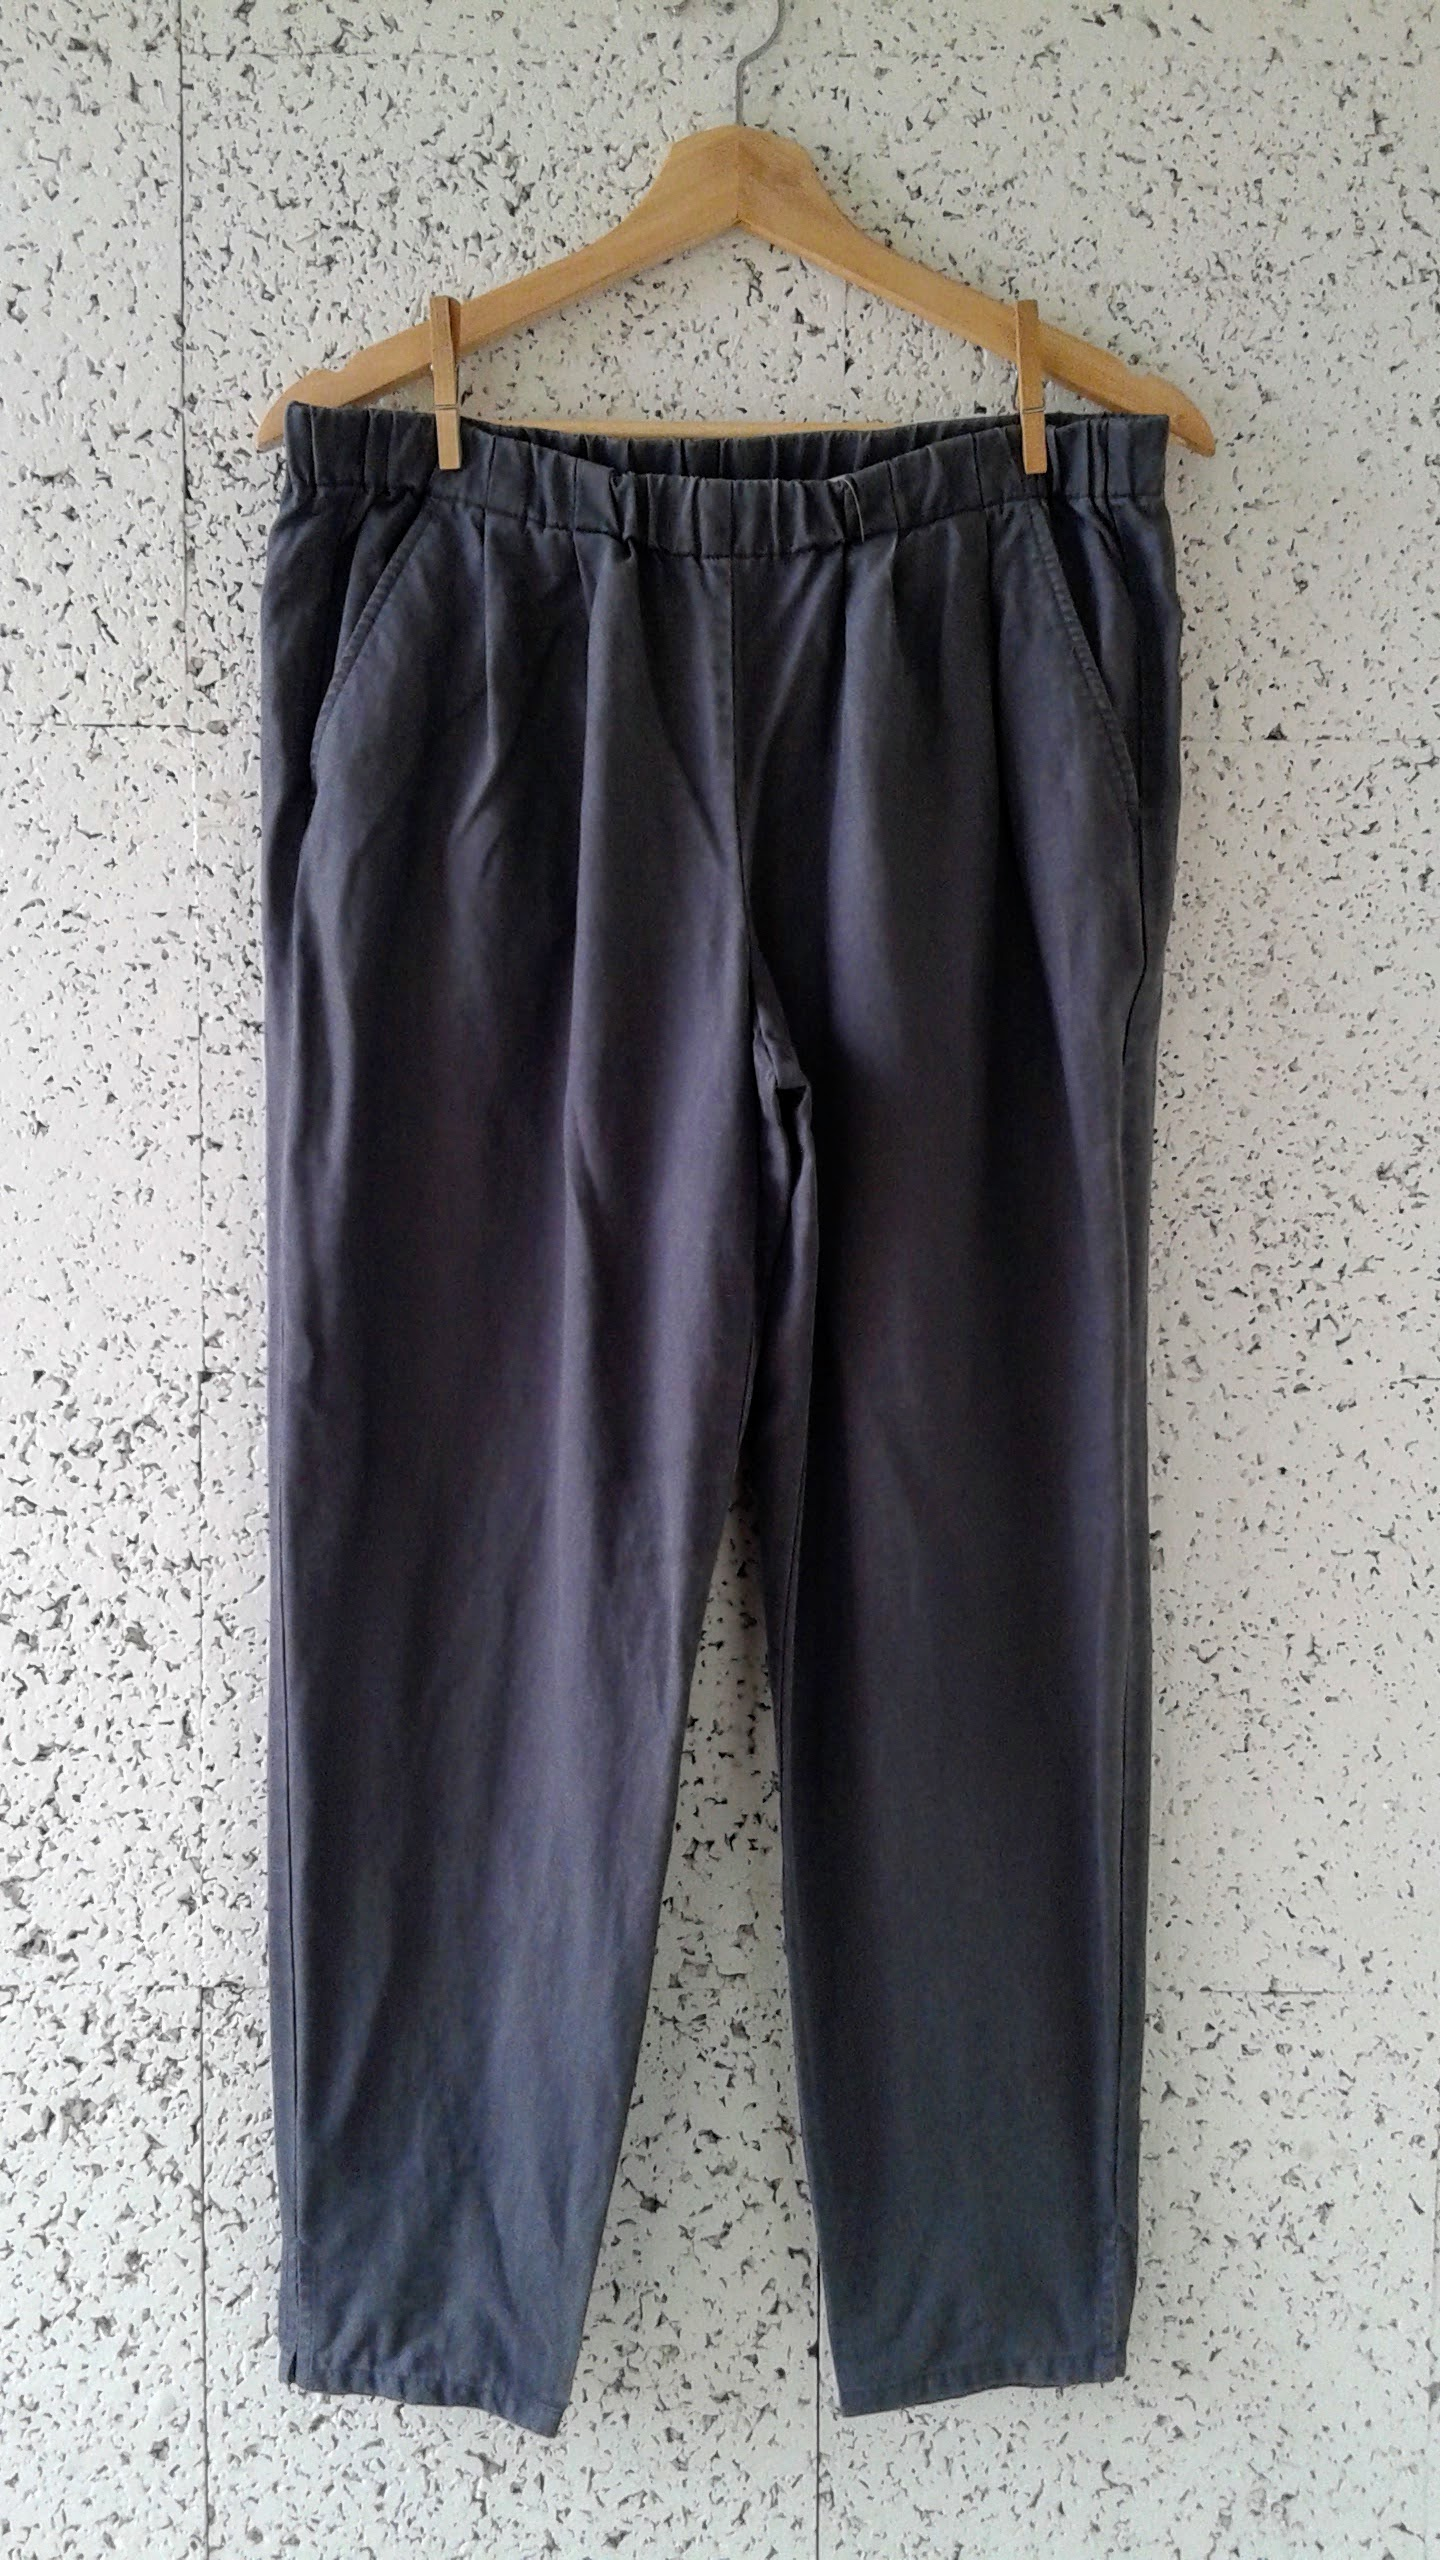 Eileen Fisher pants; Size S, $40